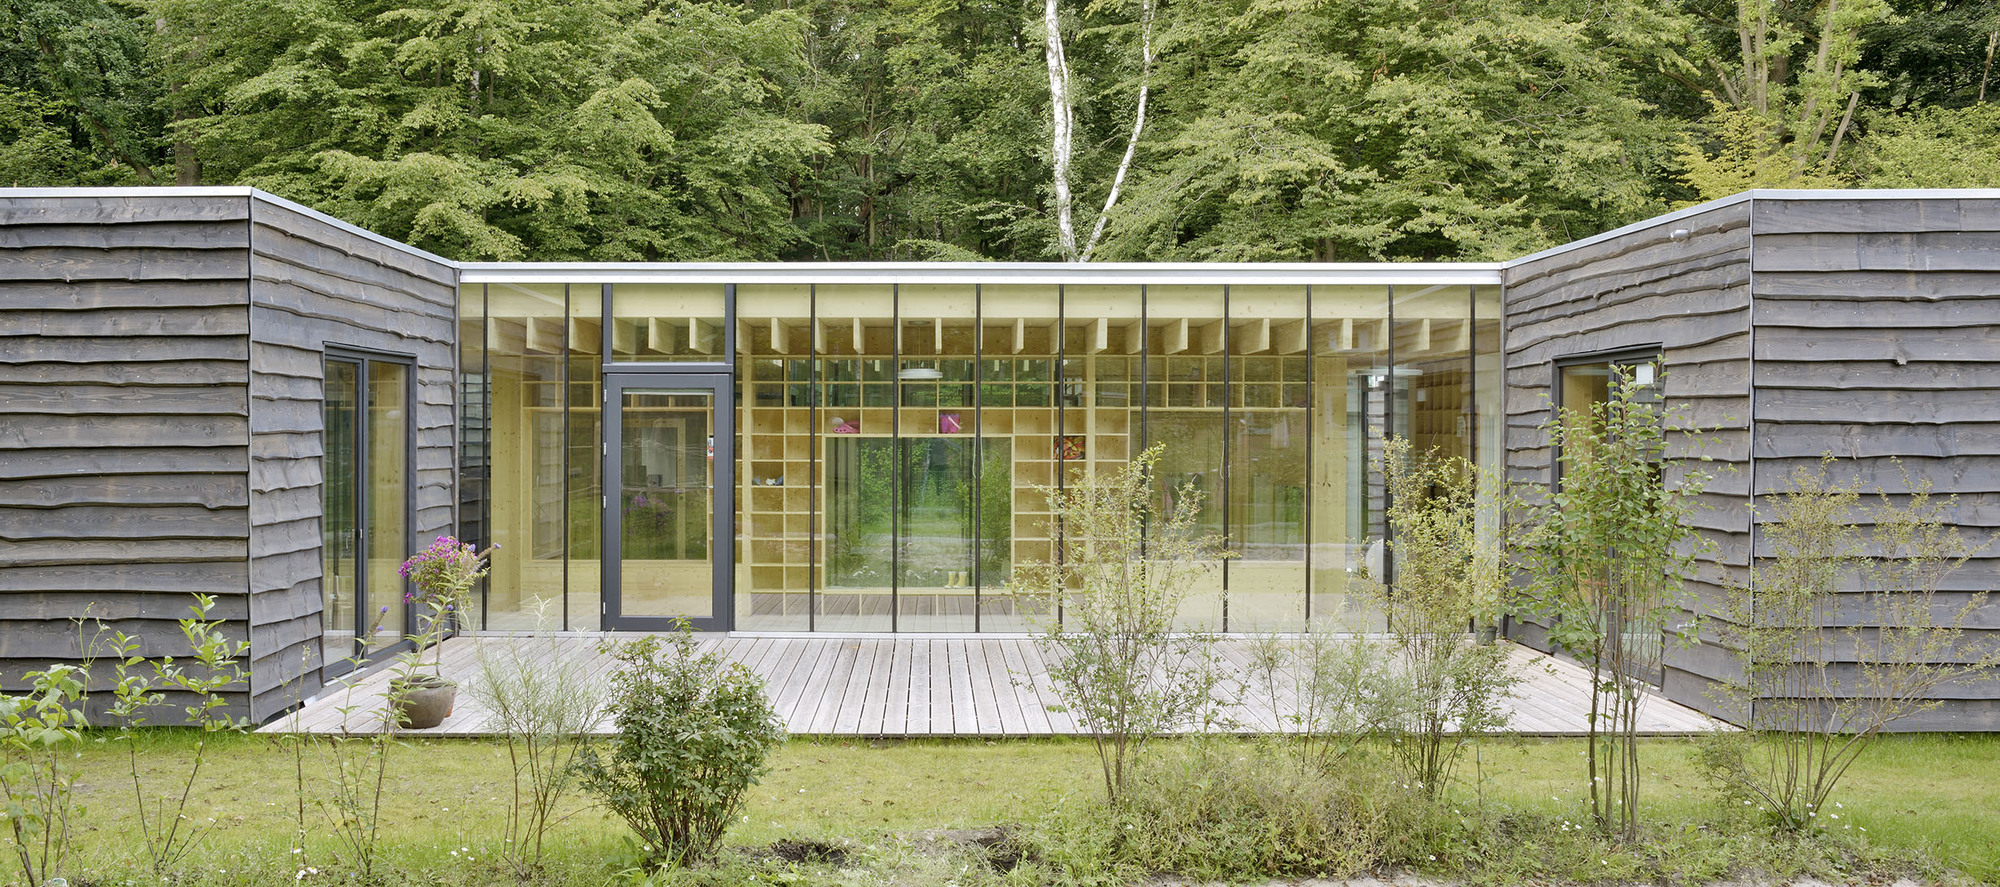 Day Care | ArchDaily